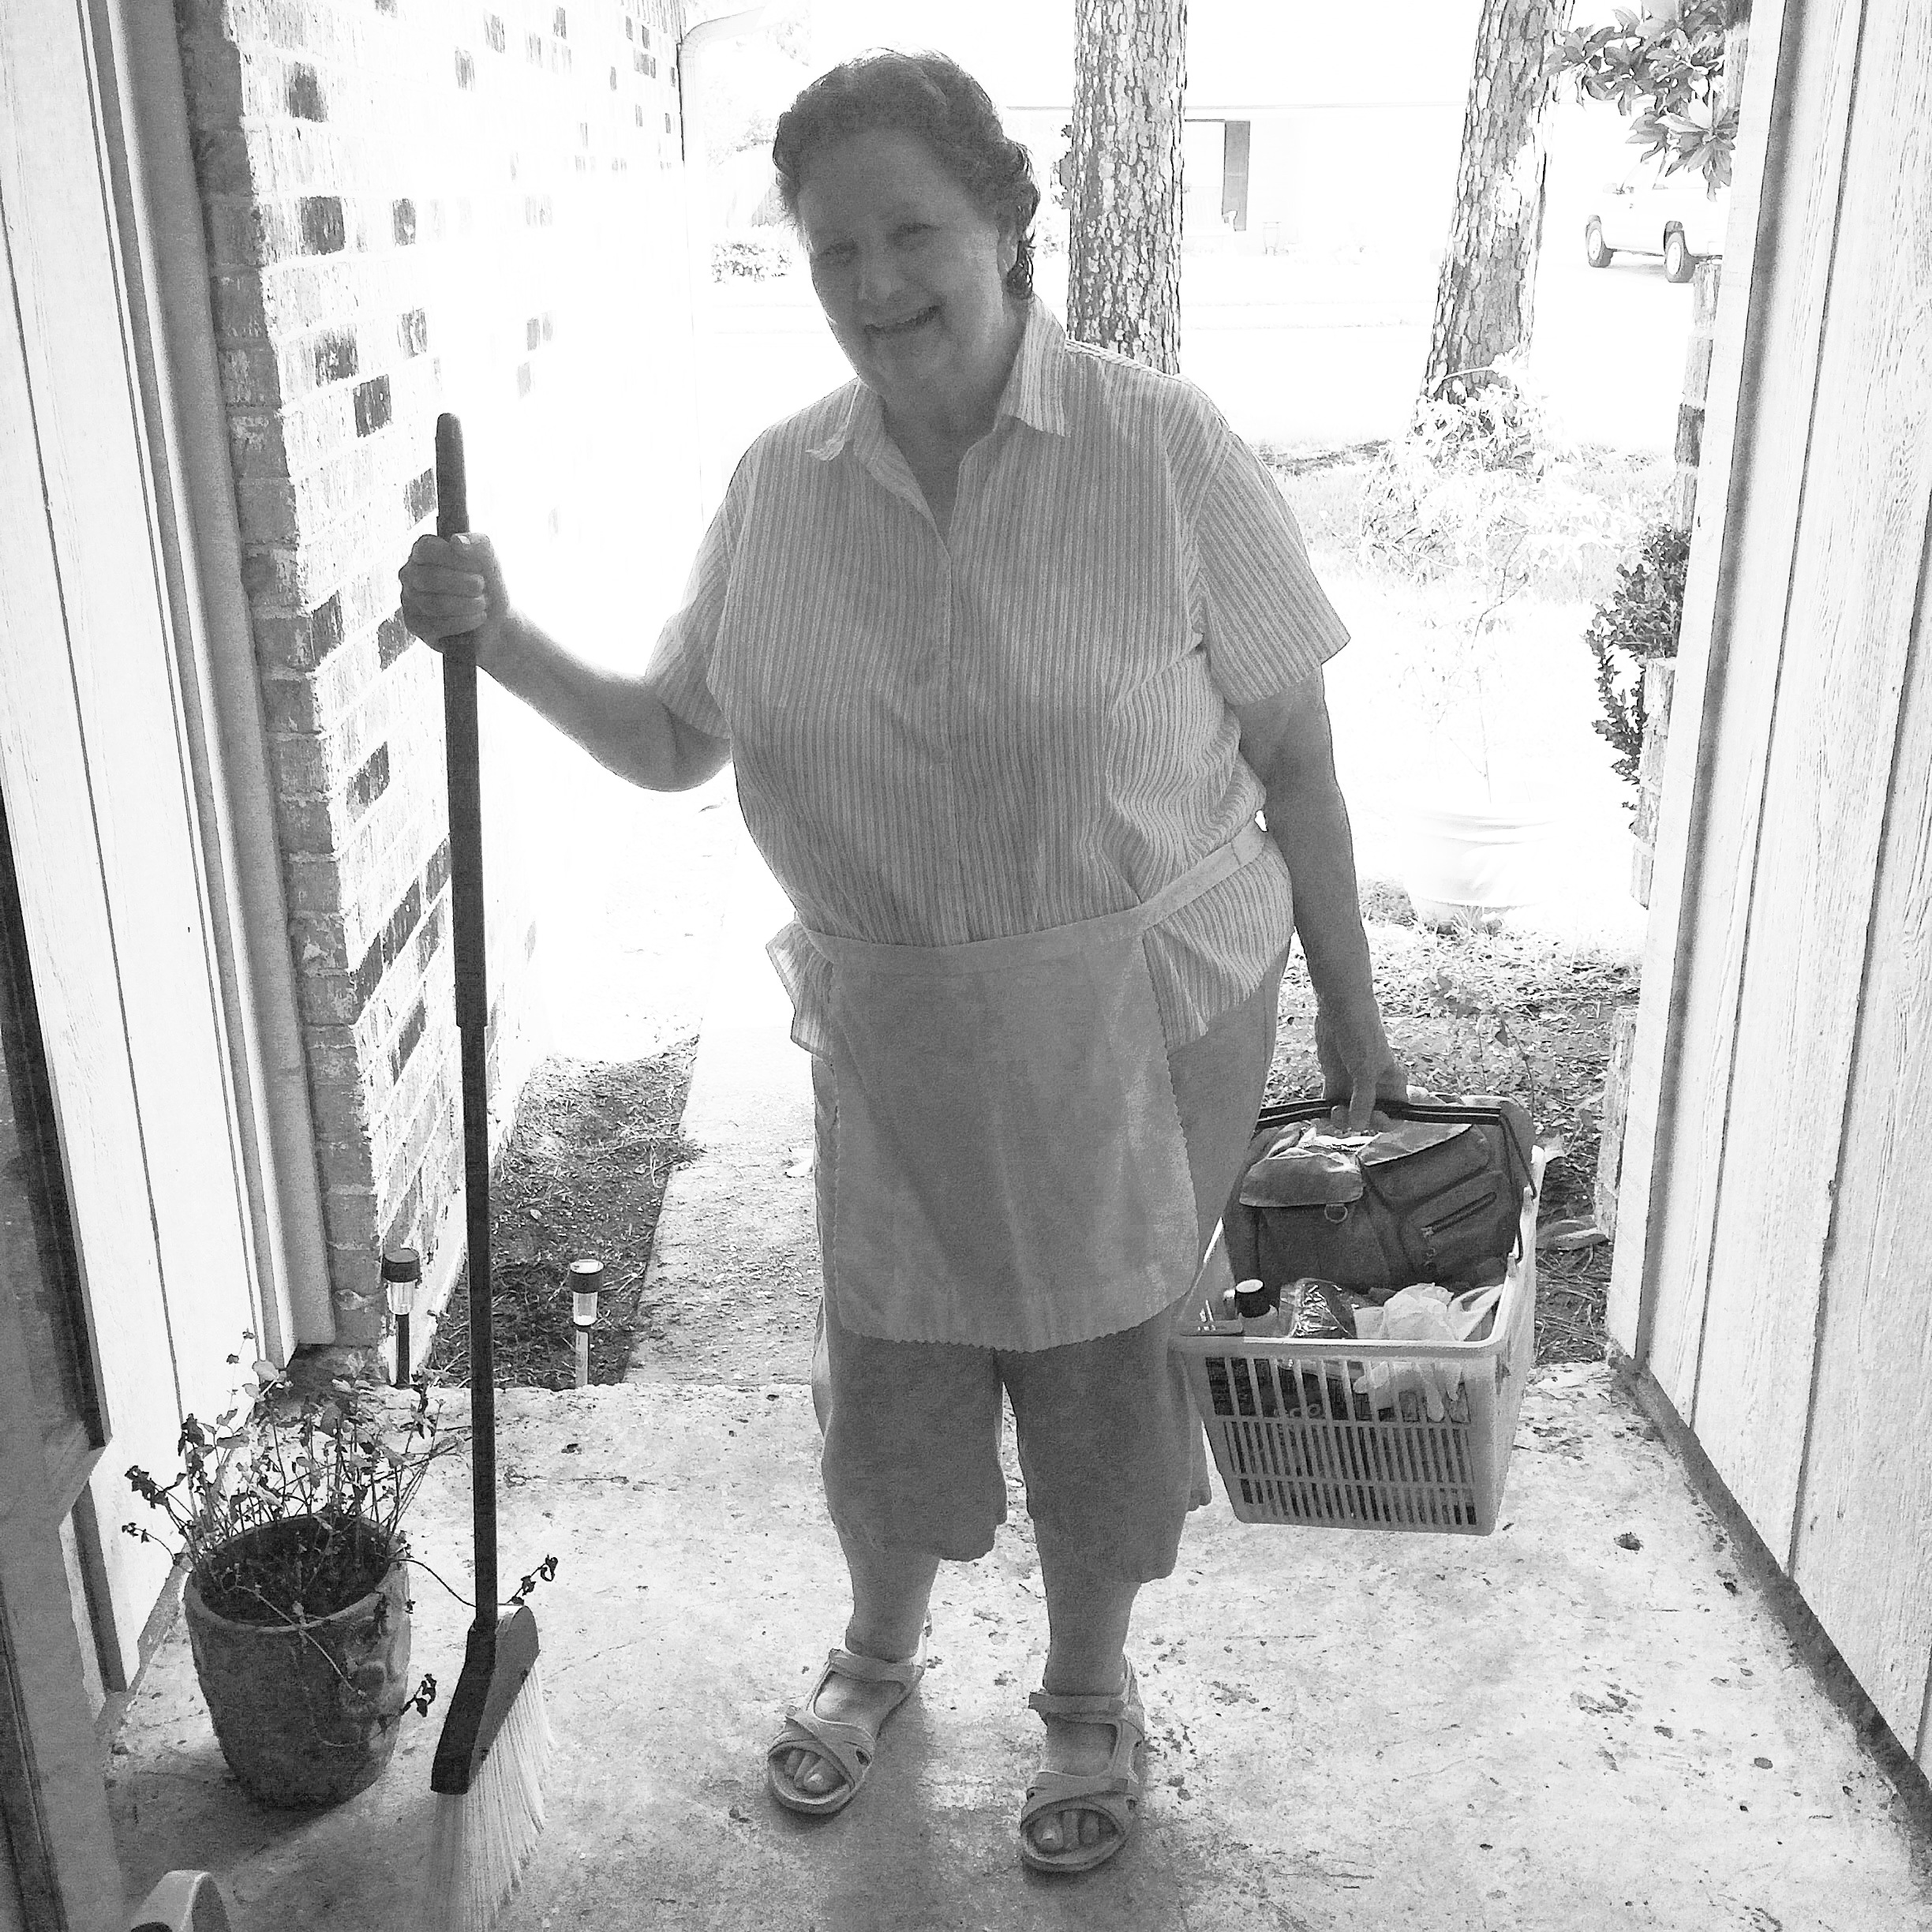 Mema is ready to clean